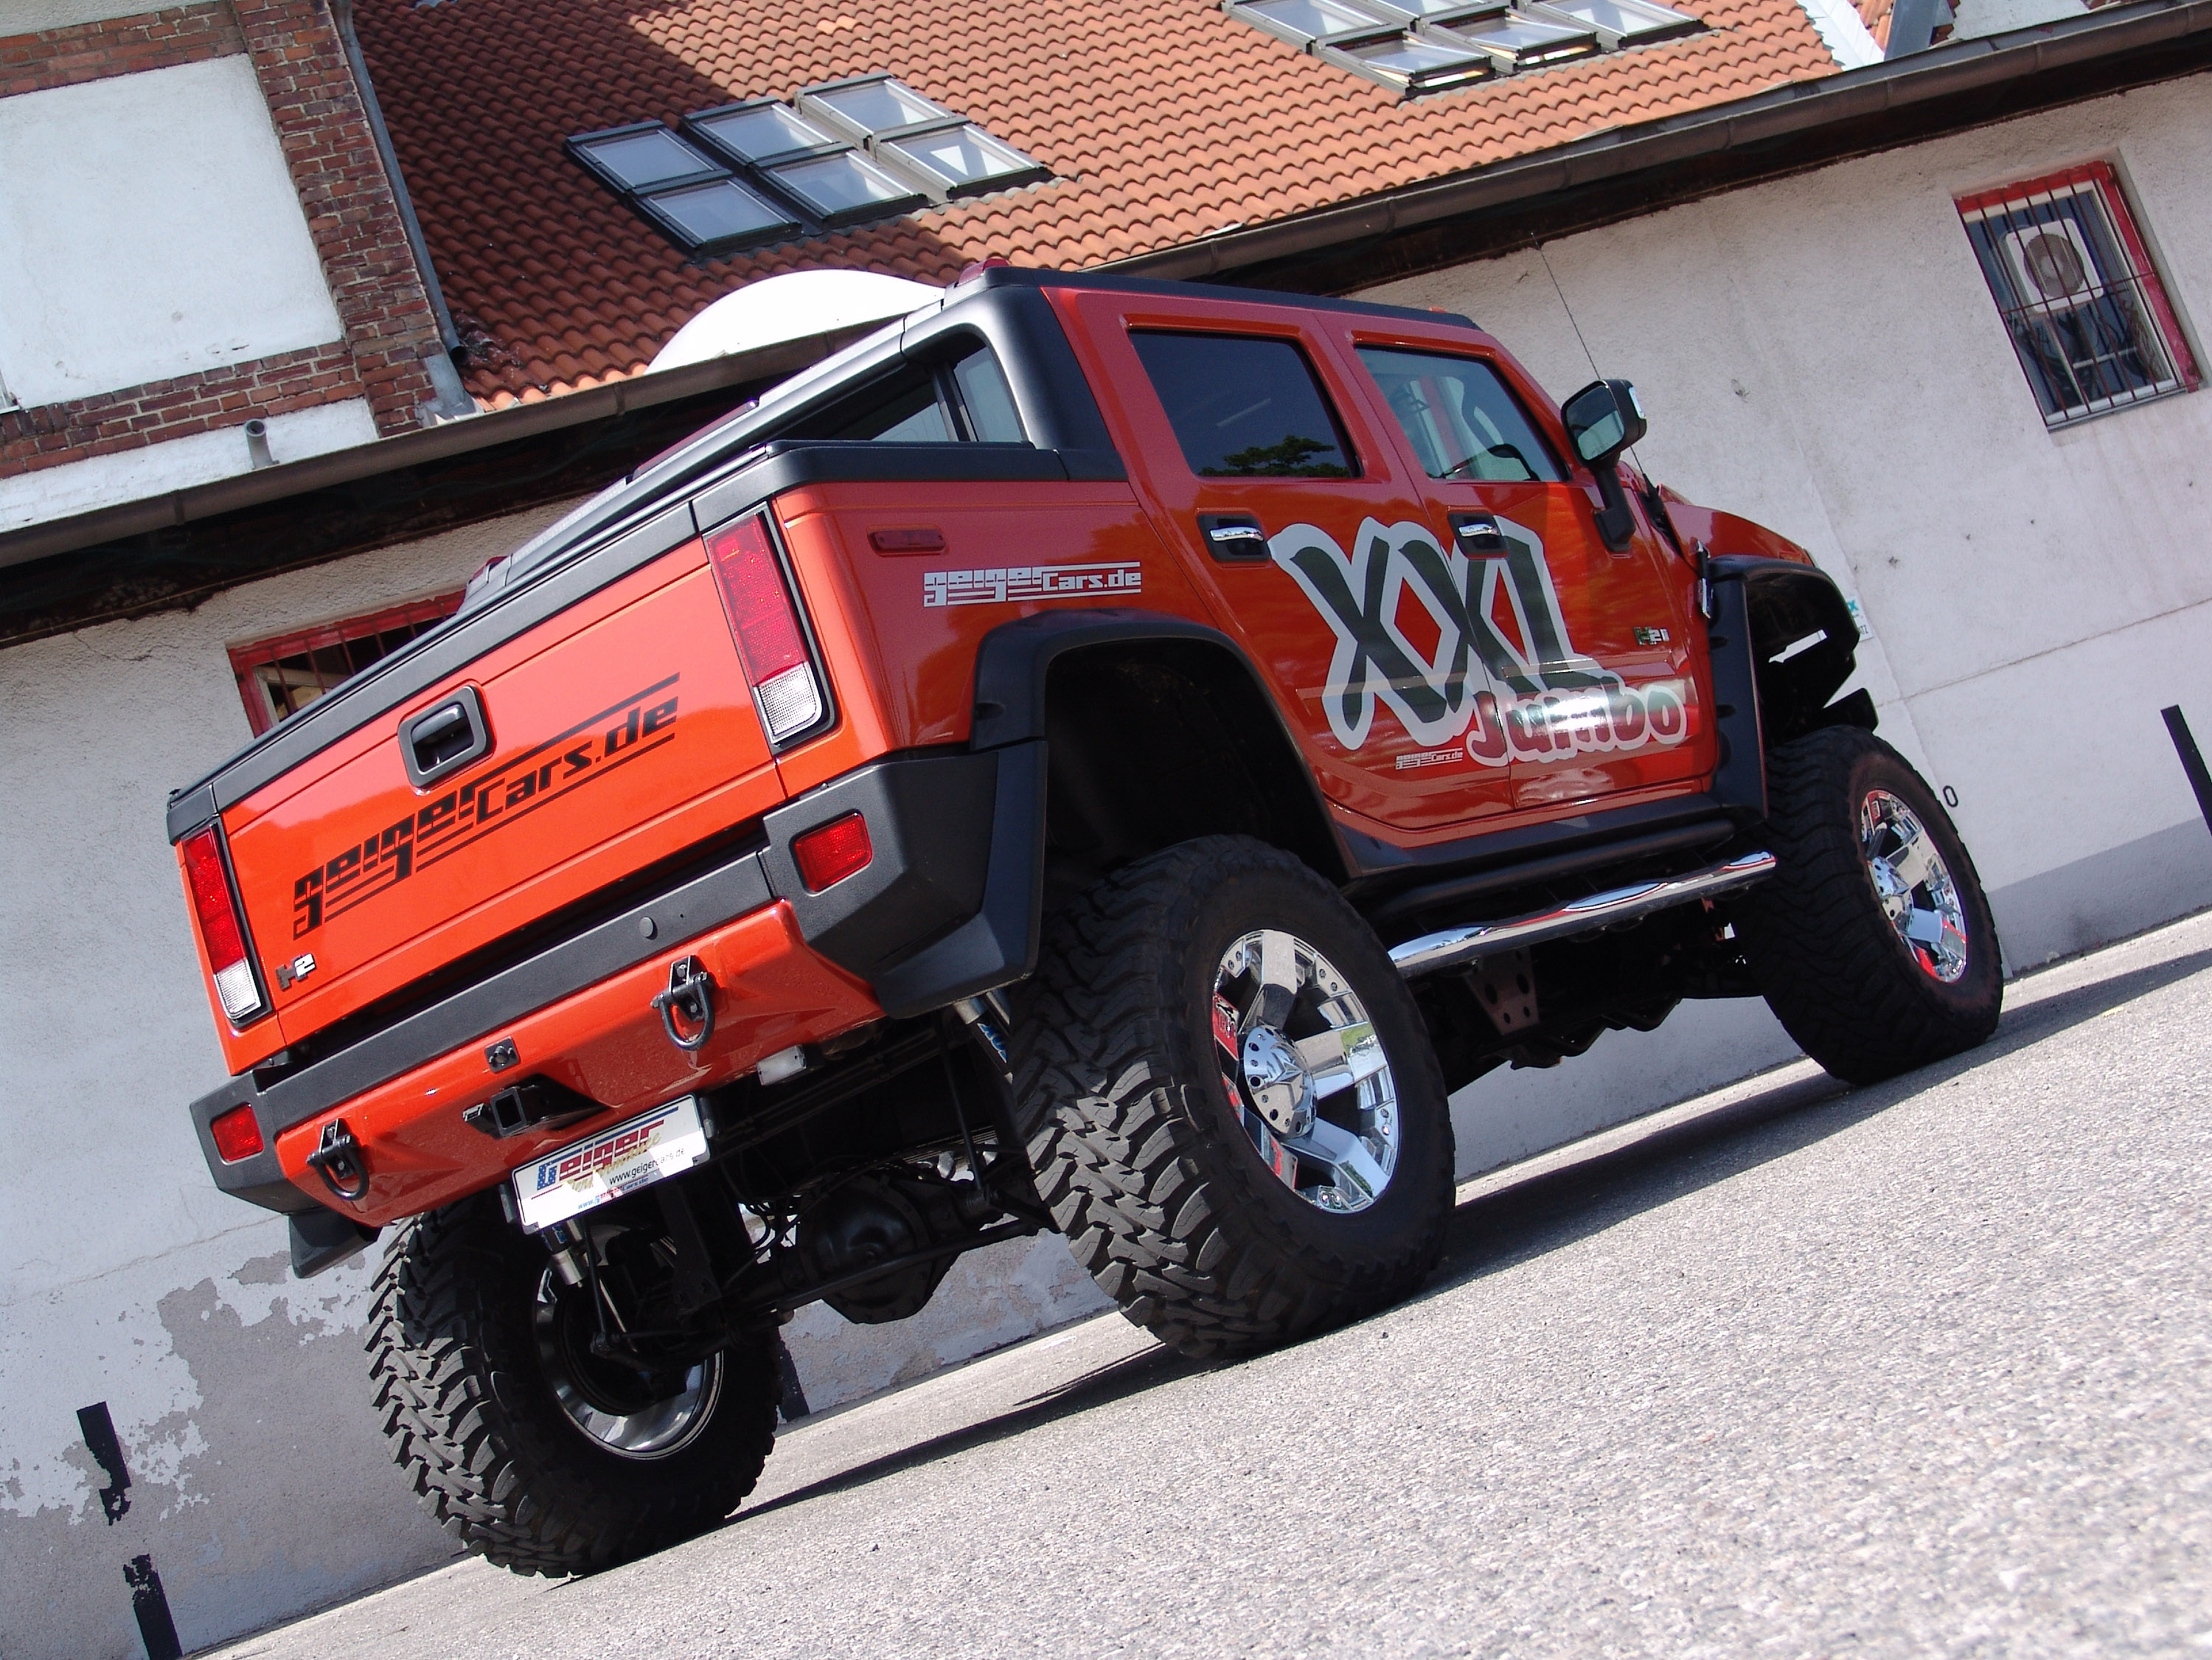 Geigercars hummer h2 sut jumbo xxl picture 18542 geigercars hummer h2 sut jumbo xxl vanachro Gallery